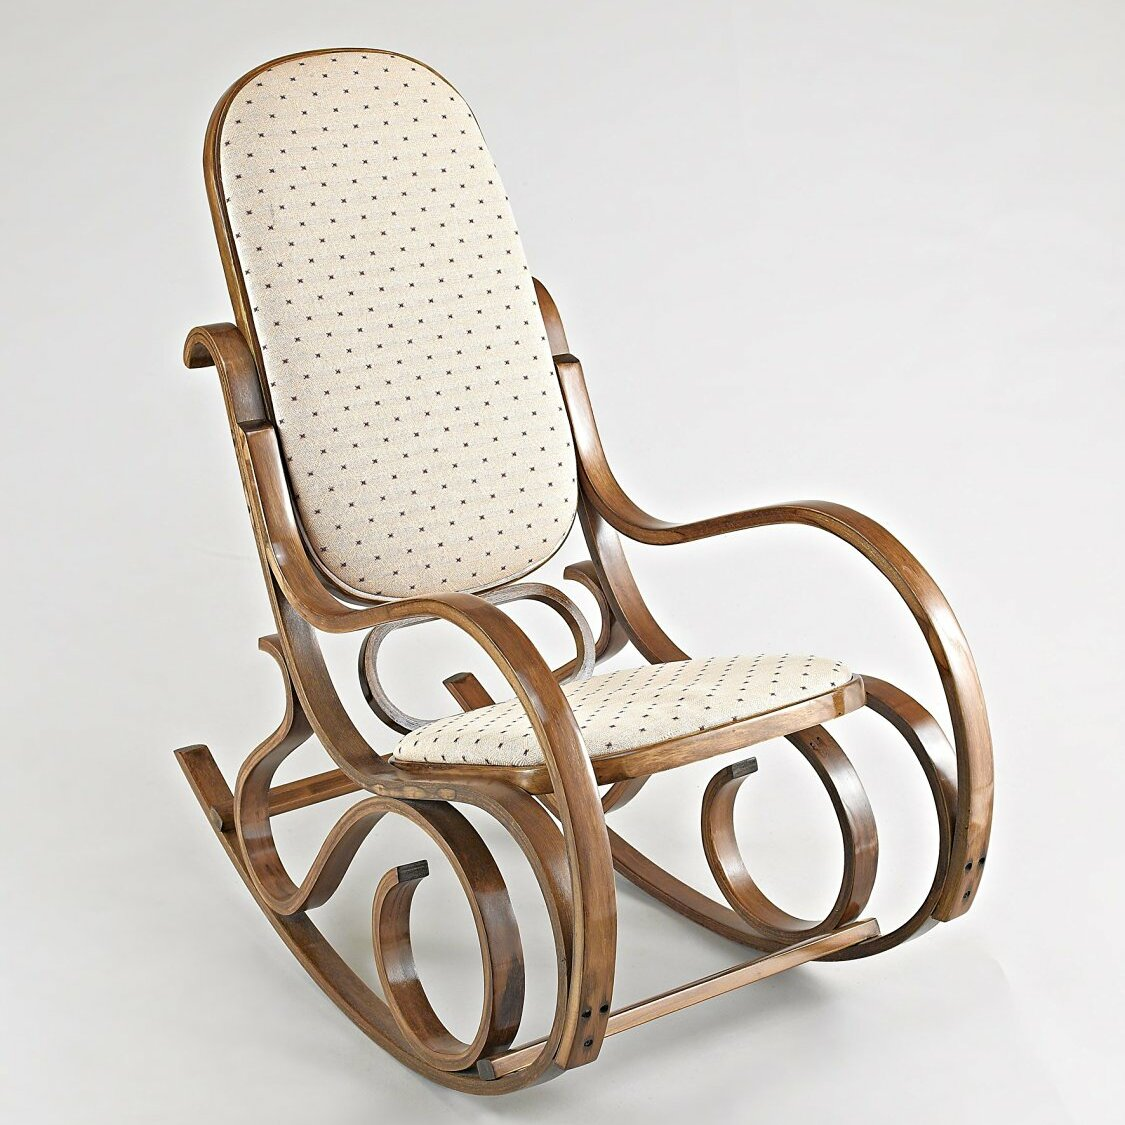 Bentwood Antique Rocking Chair by Hokku Designs